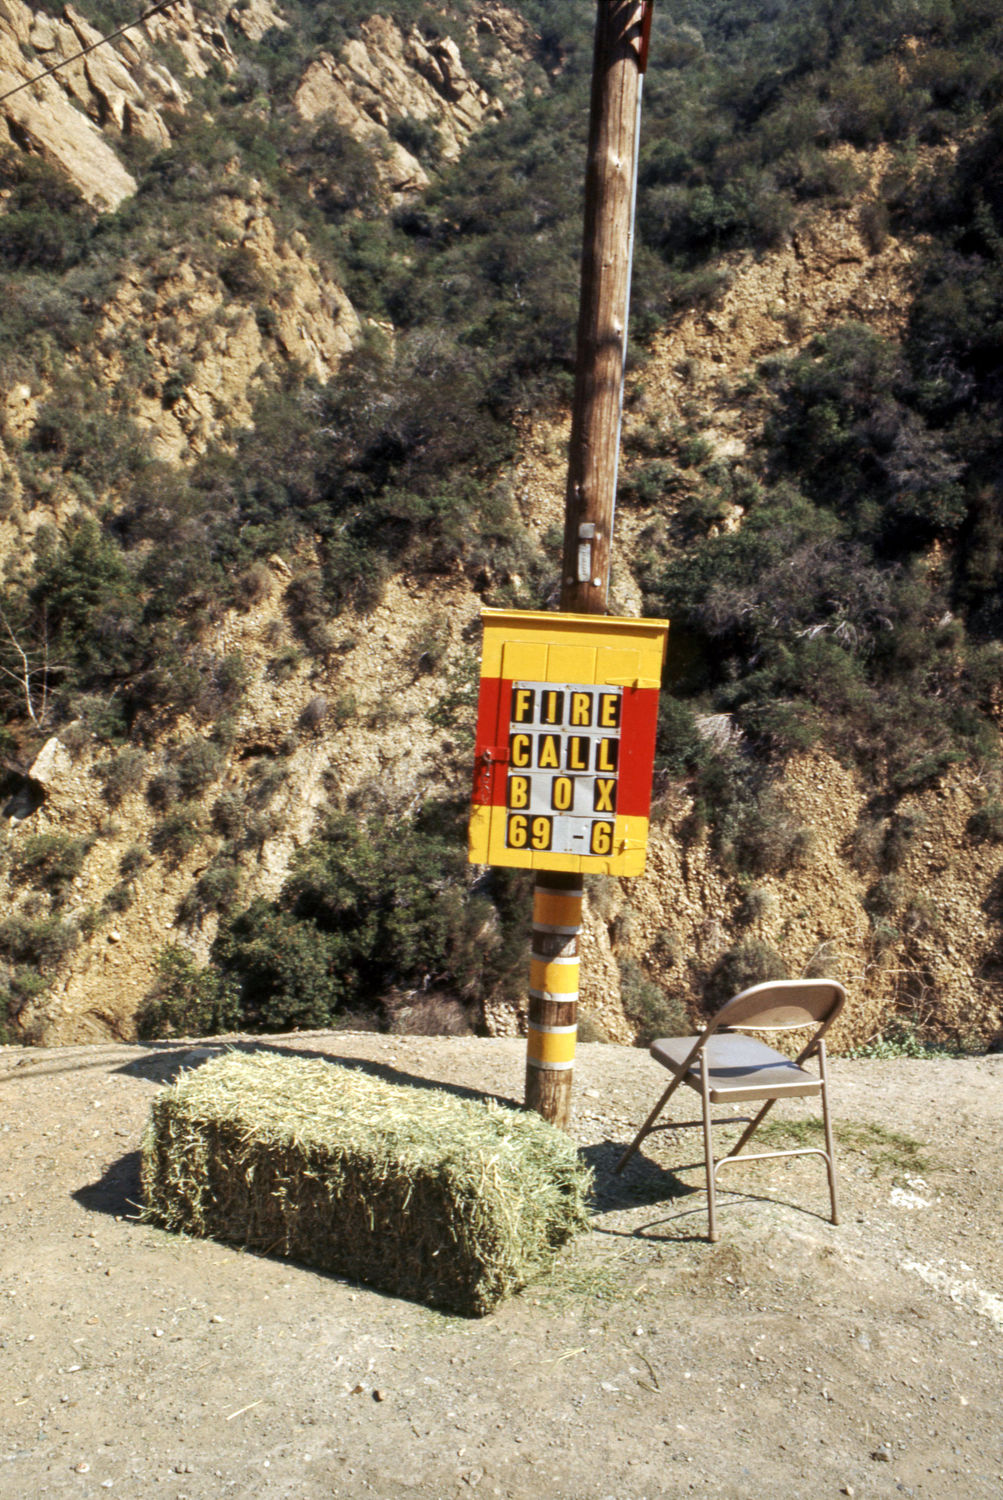 Allen Ruppersberg, Untitled, 1967. Site-specific installation with found utility box, hay bale, and metal folding chair, Pacific Coast Highway, California (destroyed). Courtesy the artist.